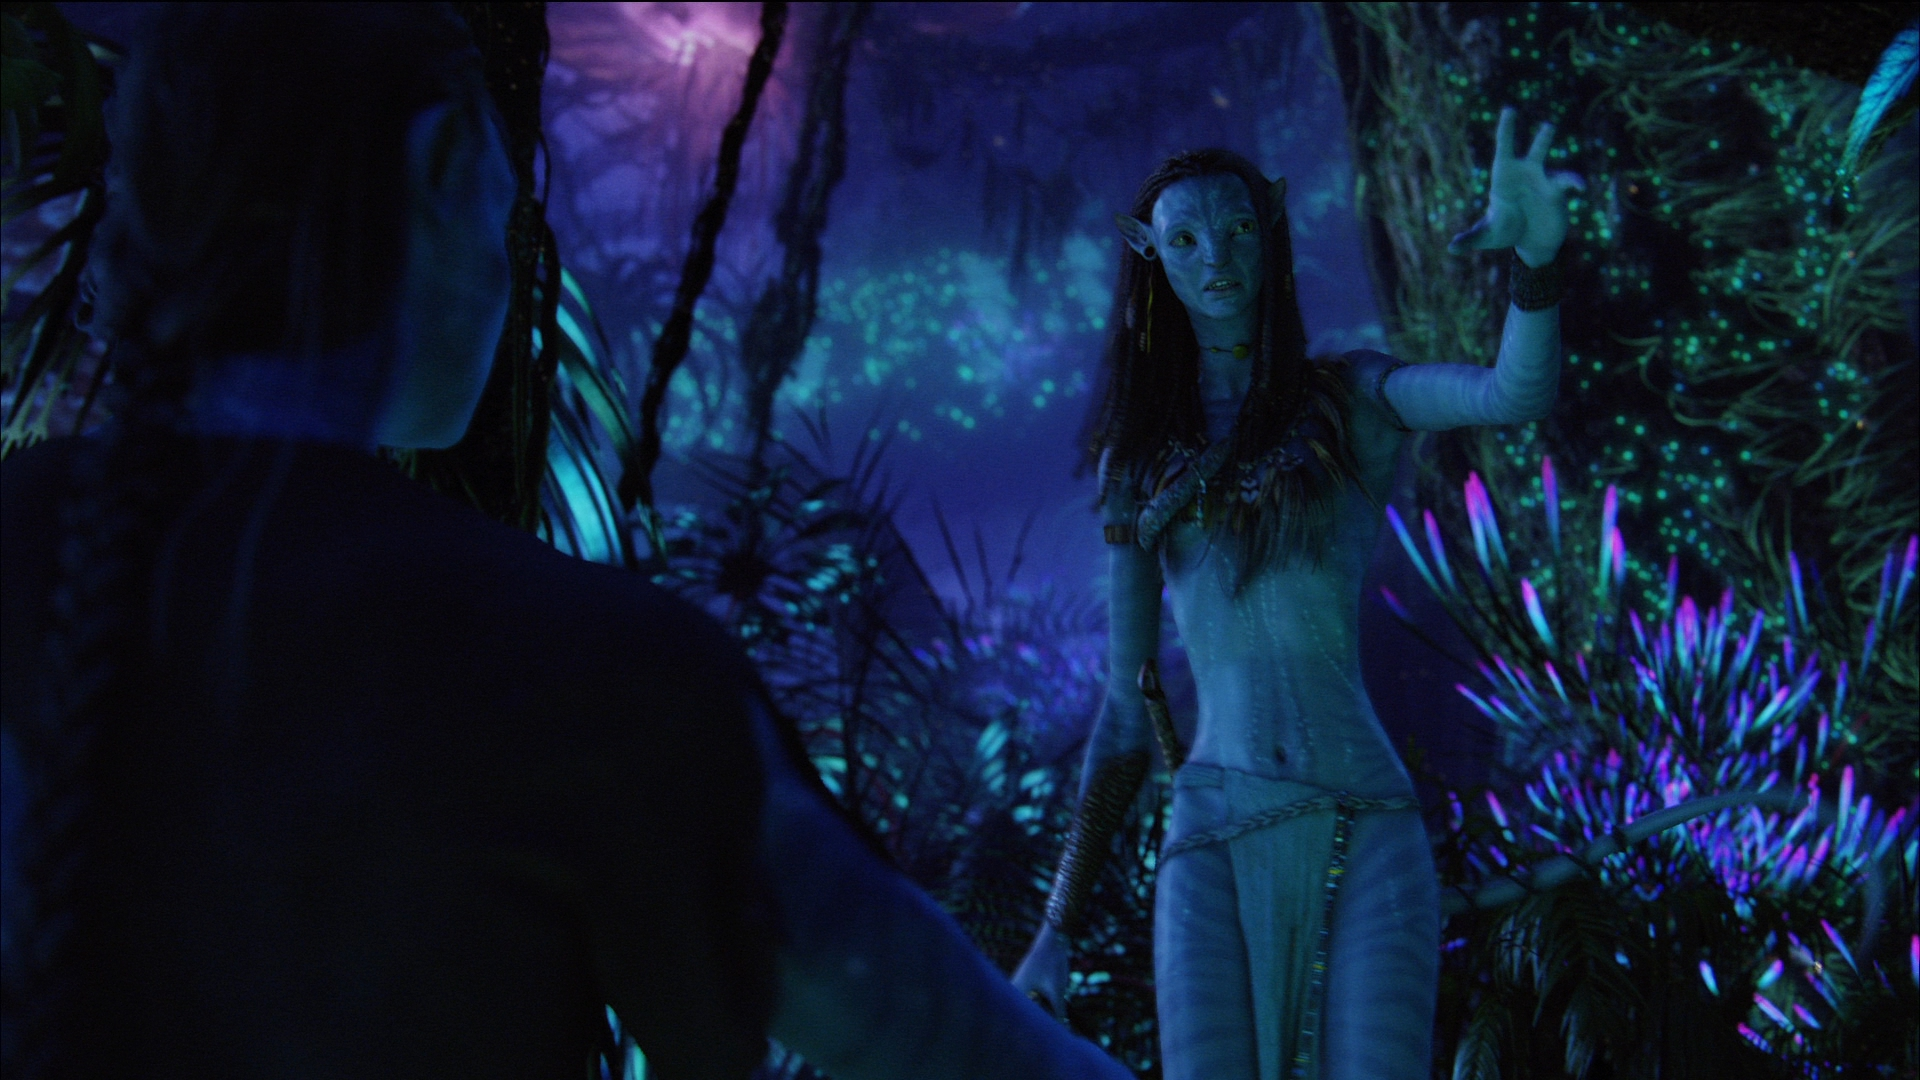 Wallpaper Neytiri Seze Avatar Hd Movies 4115: Avatar Wallpapers, Pictures, Images